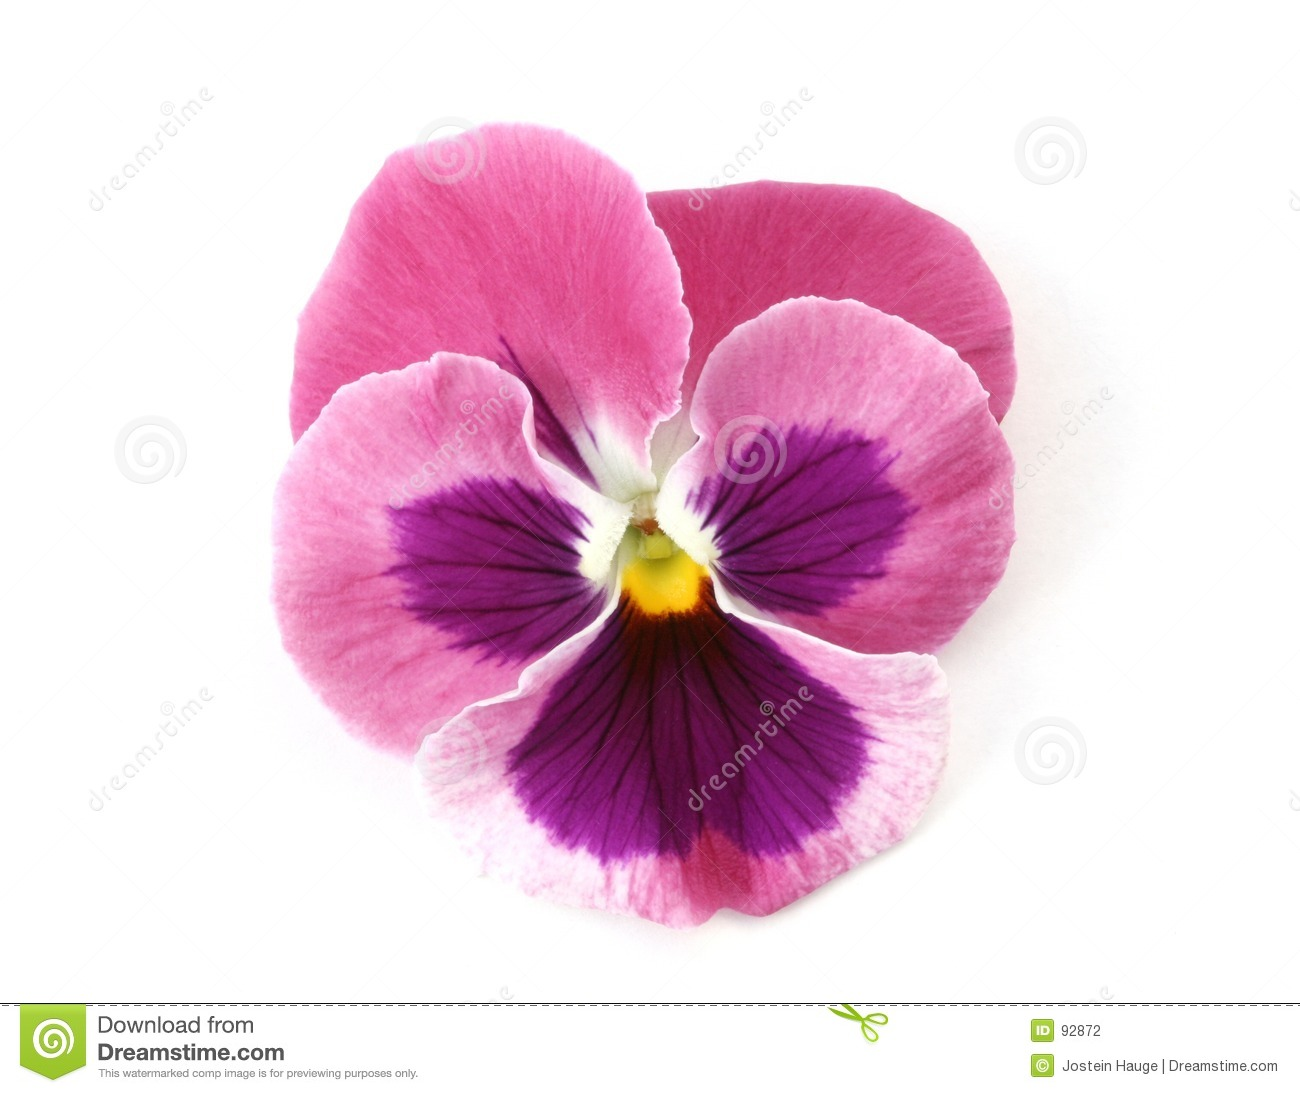 Design elements pink pansy stock photo image of flower download comp mightylinksfo